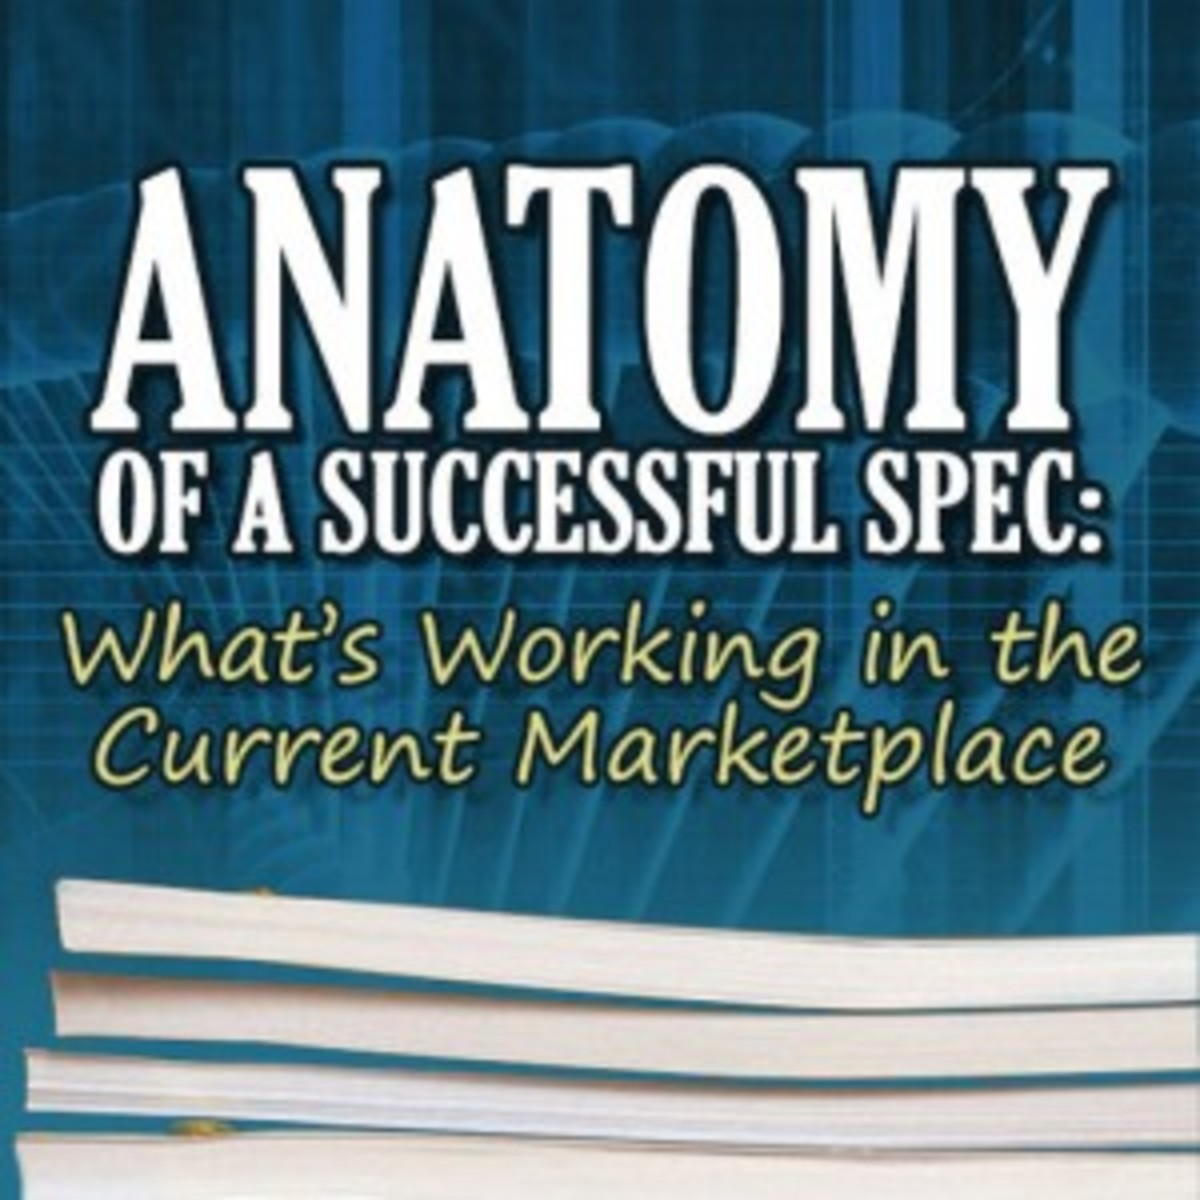 Anatomy of a Successful Spec: What's Working in the Current Marketplace